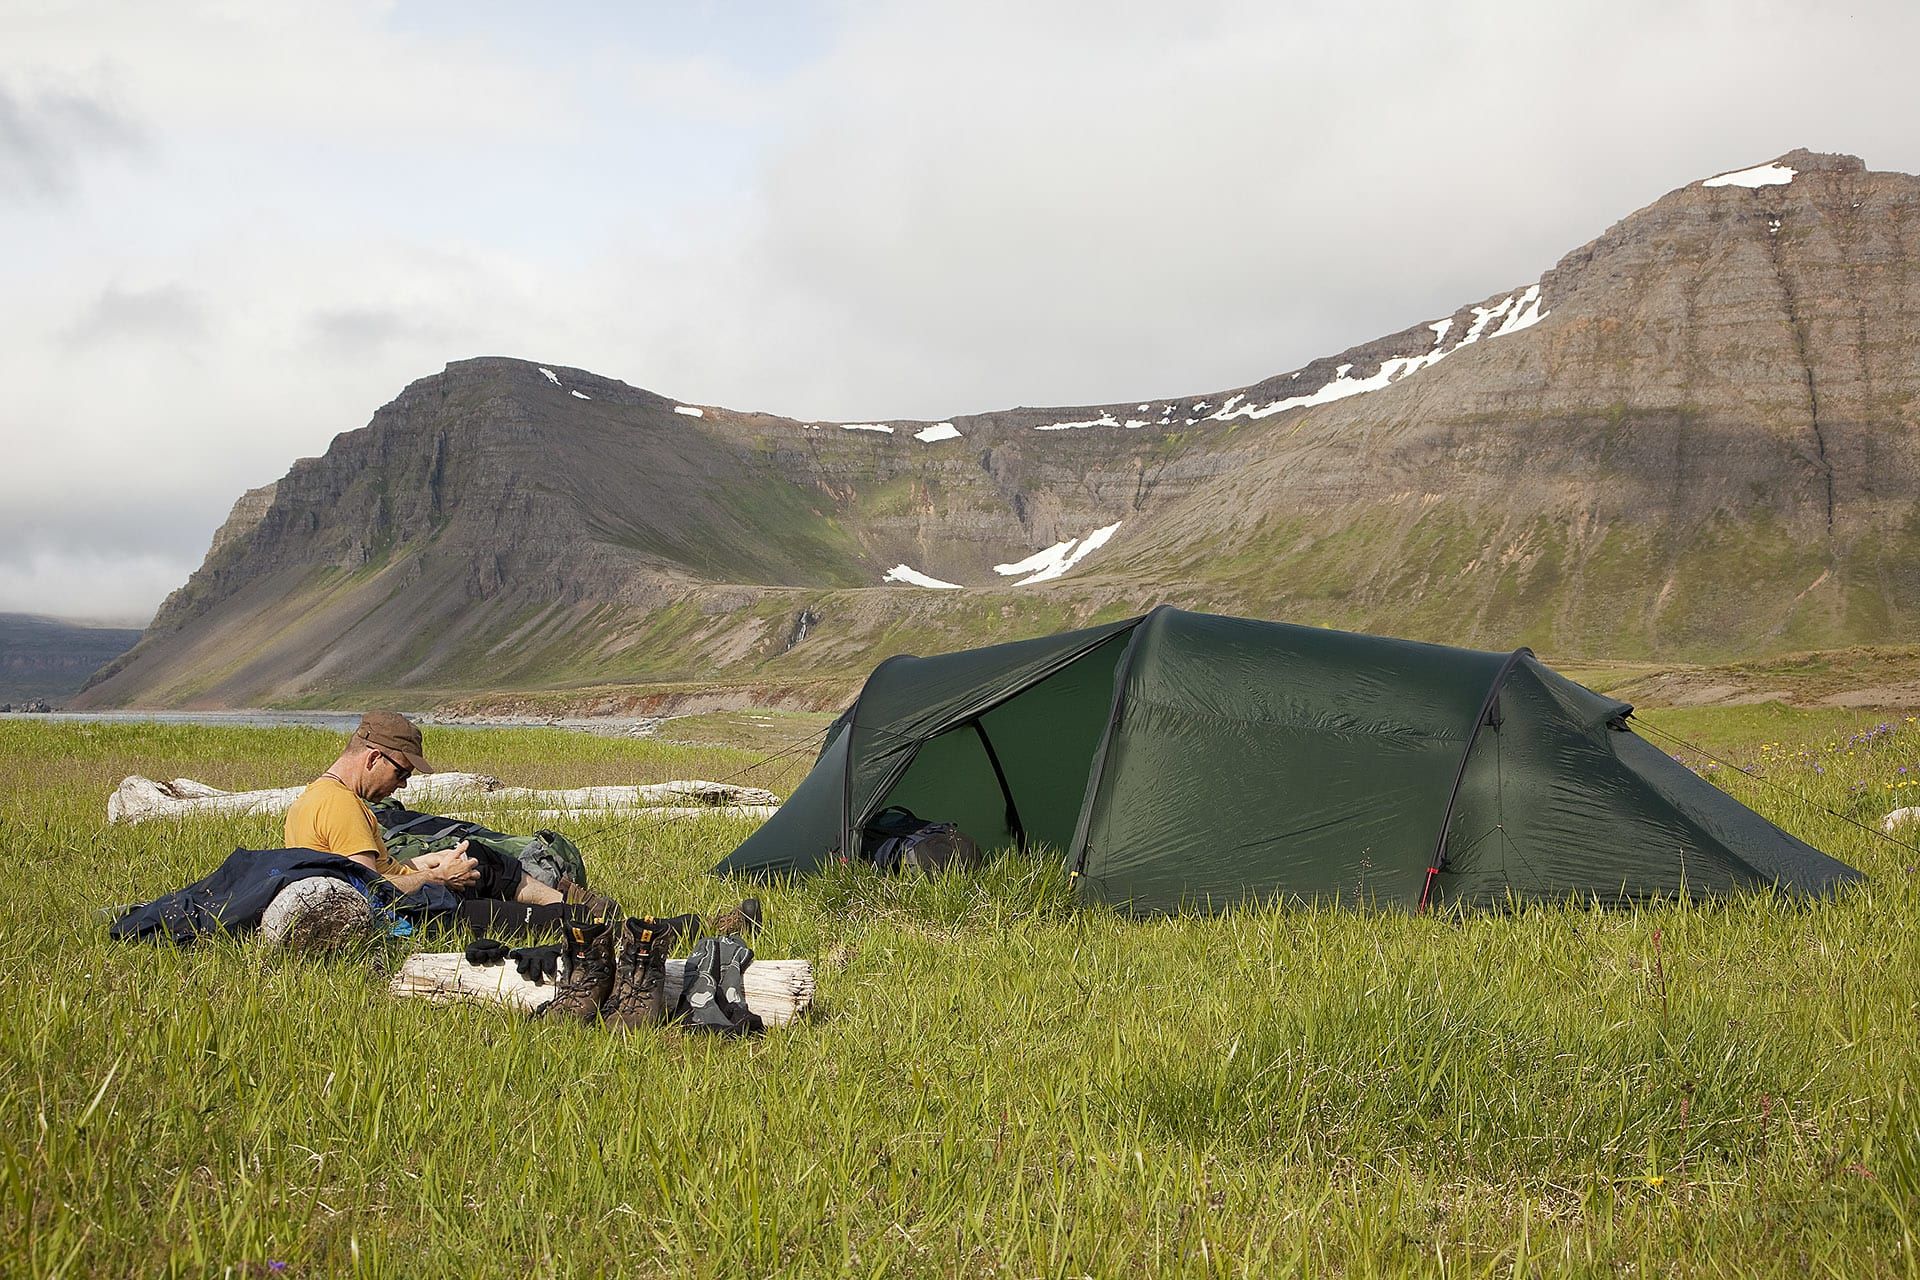 Finding tent spots was easy, especially in the valleys.